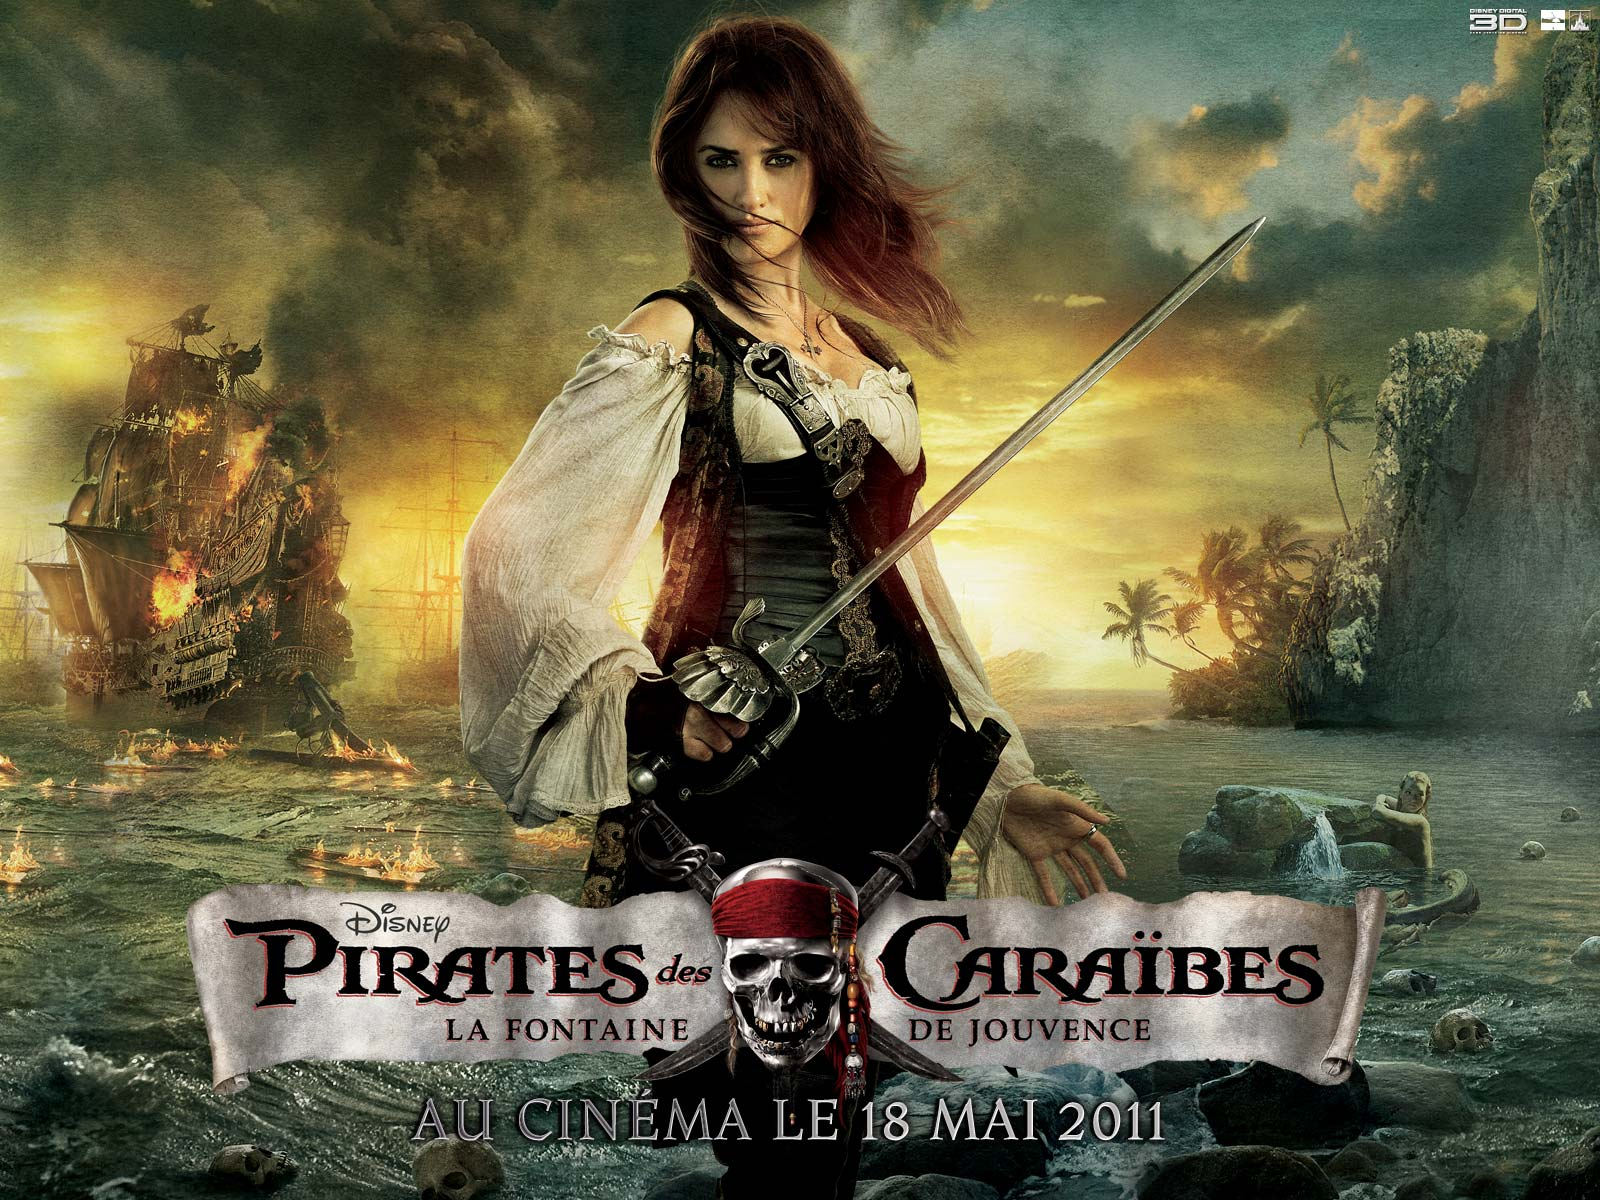 Hentay pirates of caraibi fucks image